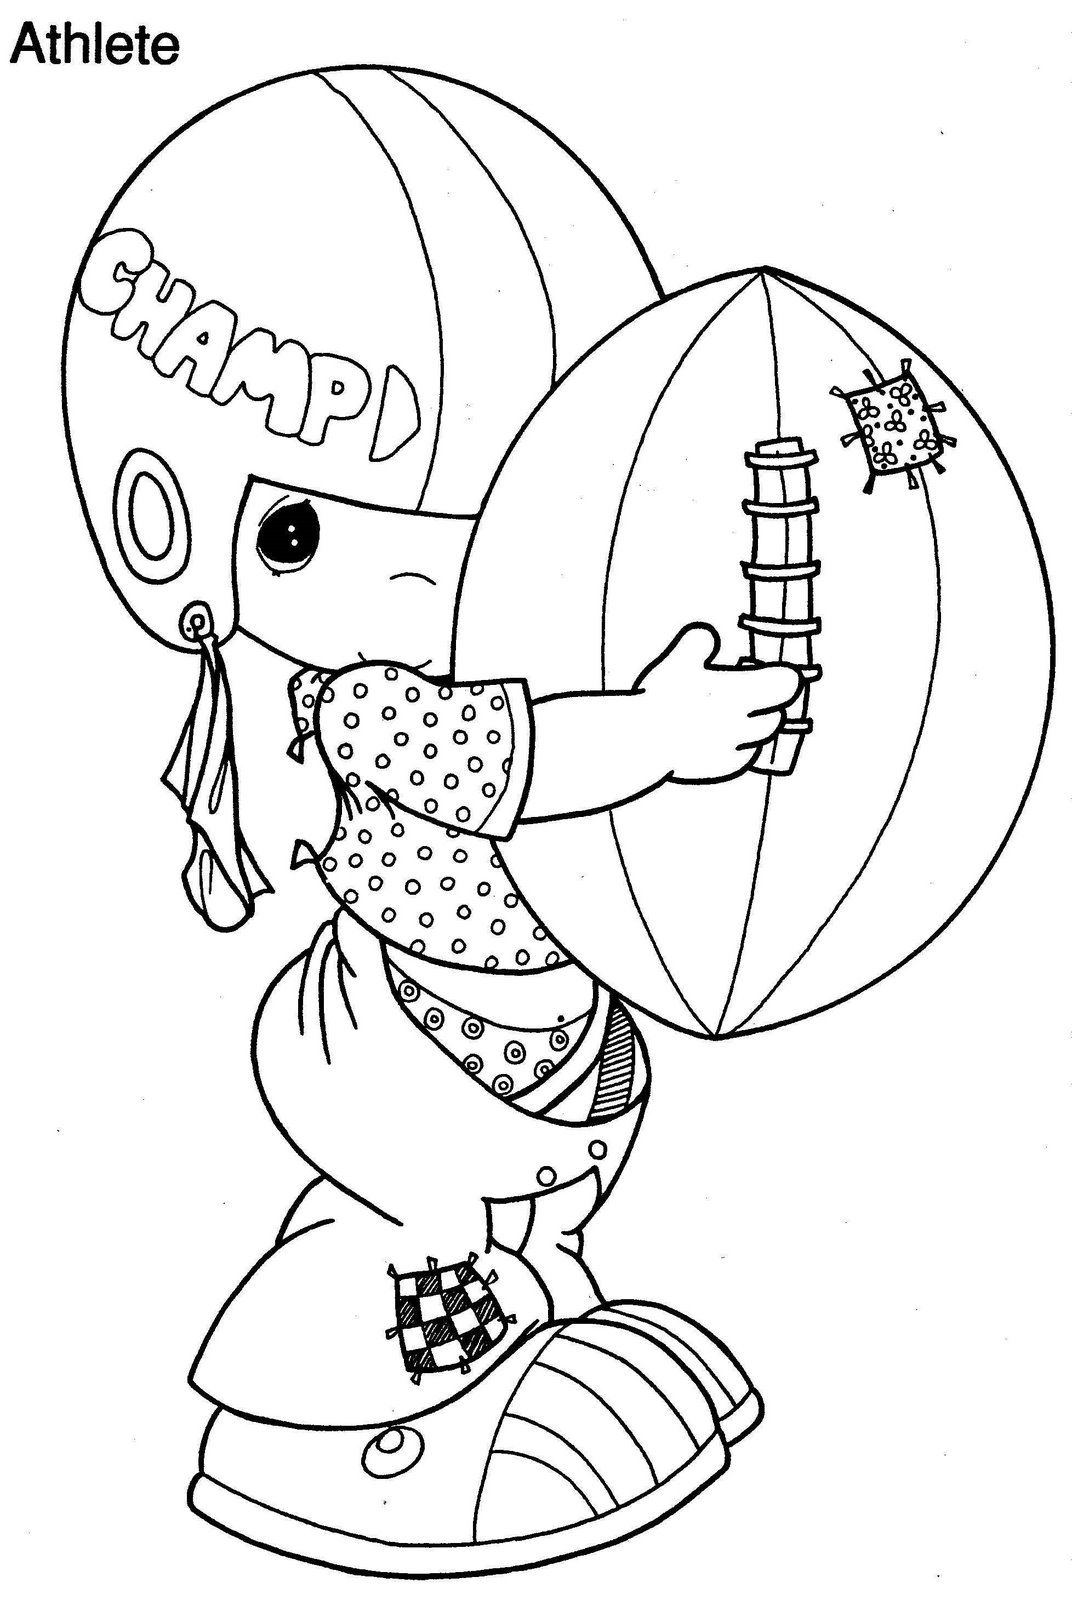 Precious moments praying coloring pages coloring home for Coloring pages of precious moments